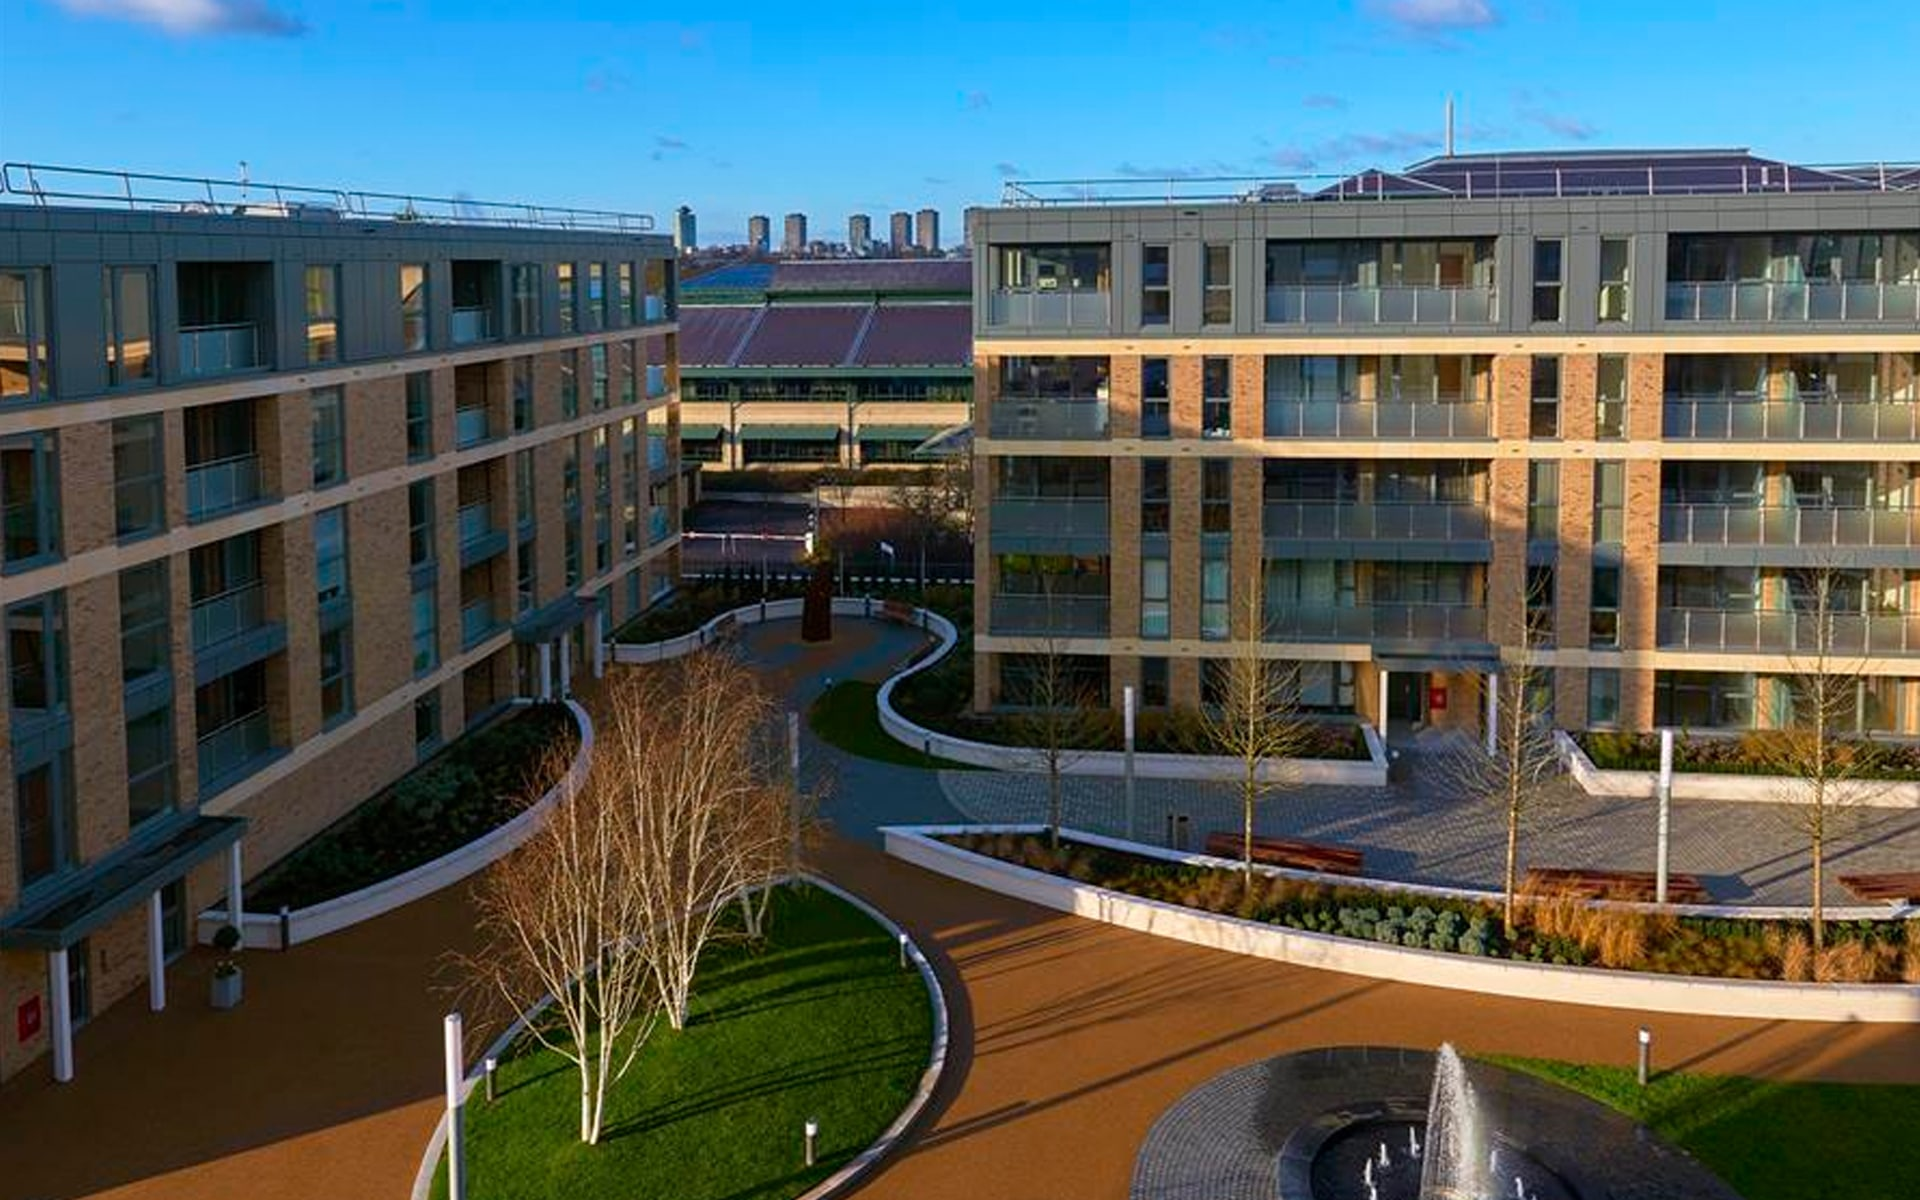 Emerald-Gardens-Sotech-Optima-FC-Rainscreen-Cladding-in-Alucobond-Plus